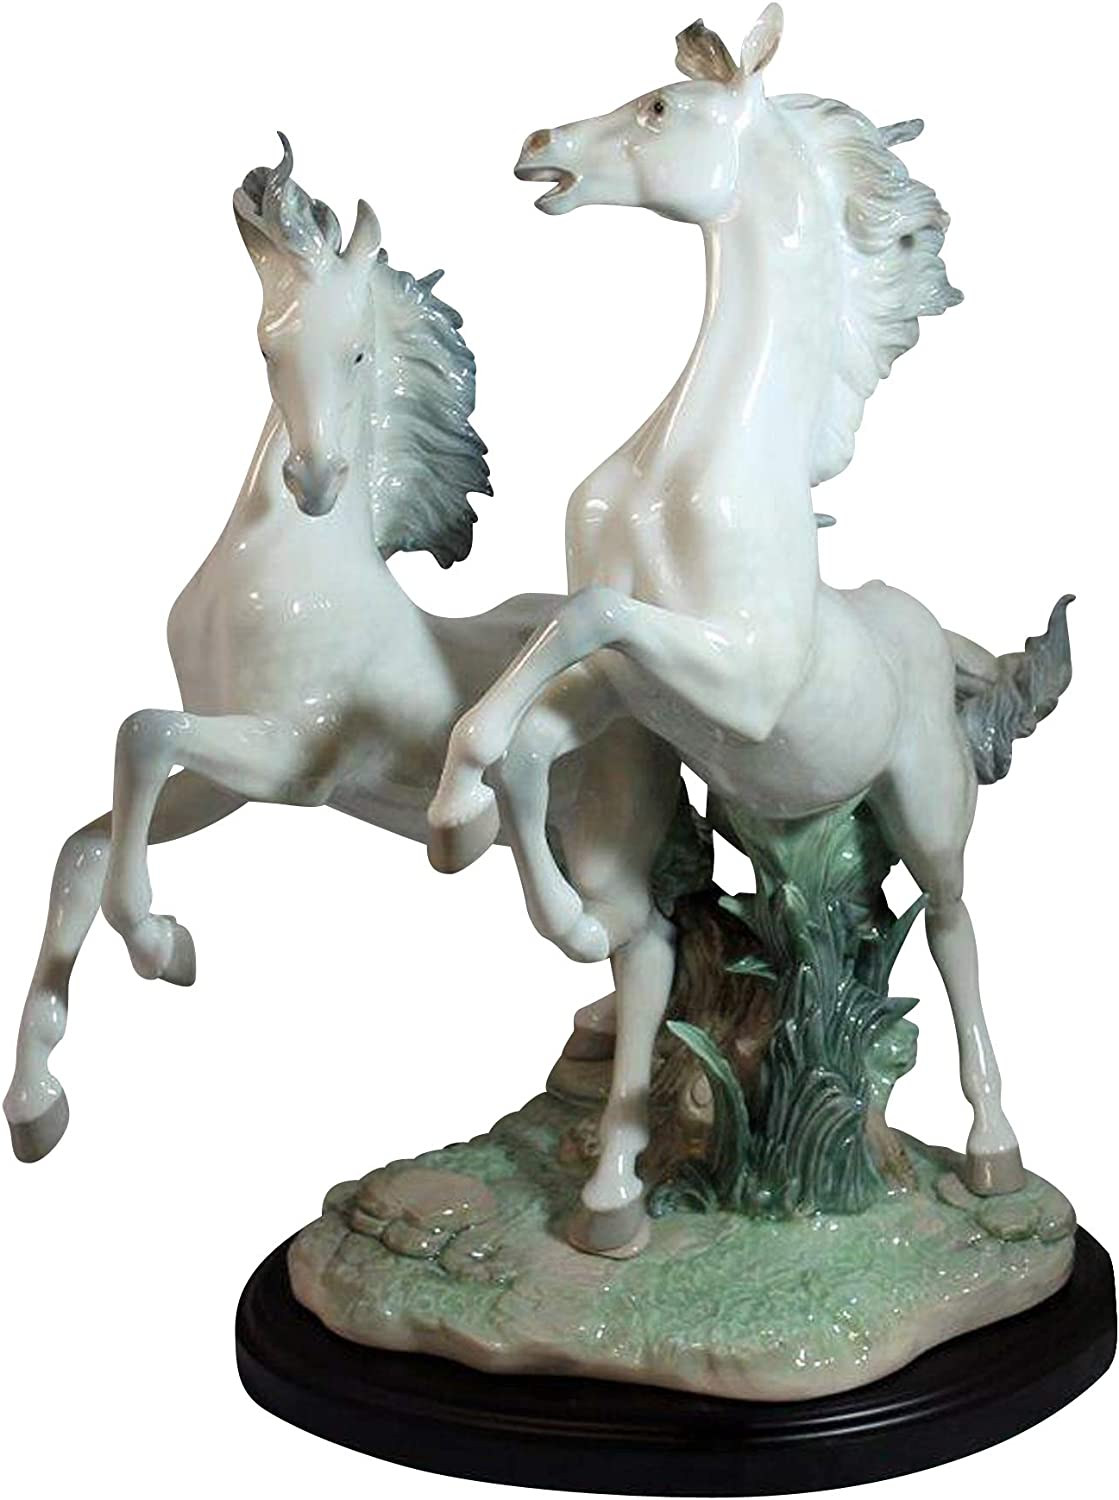 Amazon Com Lladro Free As The Wind Figurine Plus One Year Accidental Breakage Replacement Home Kitchen